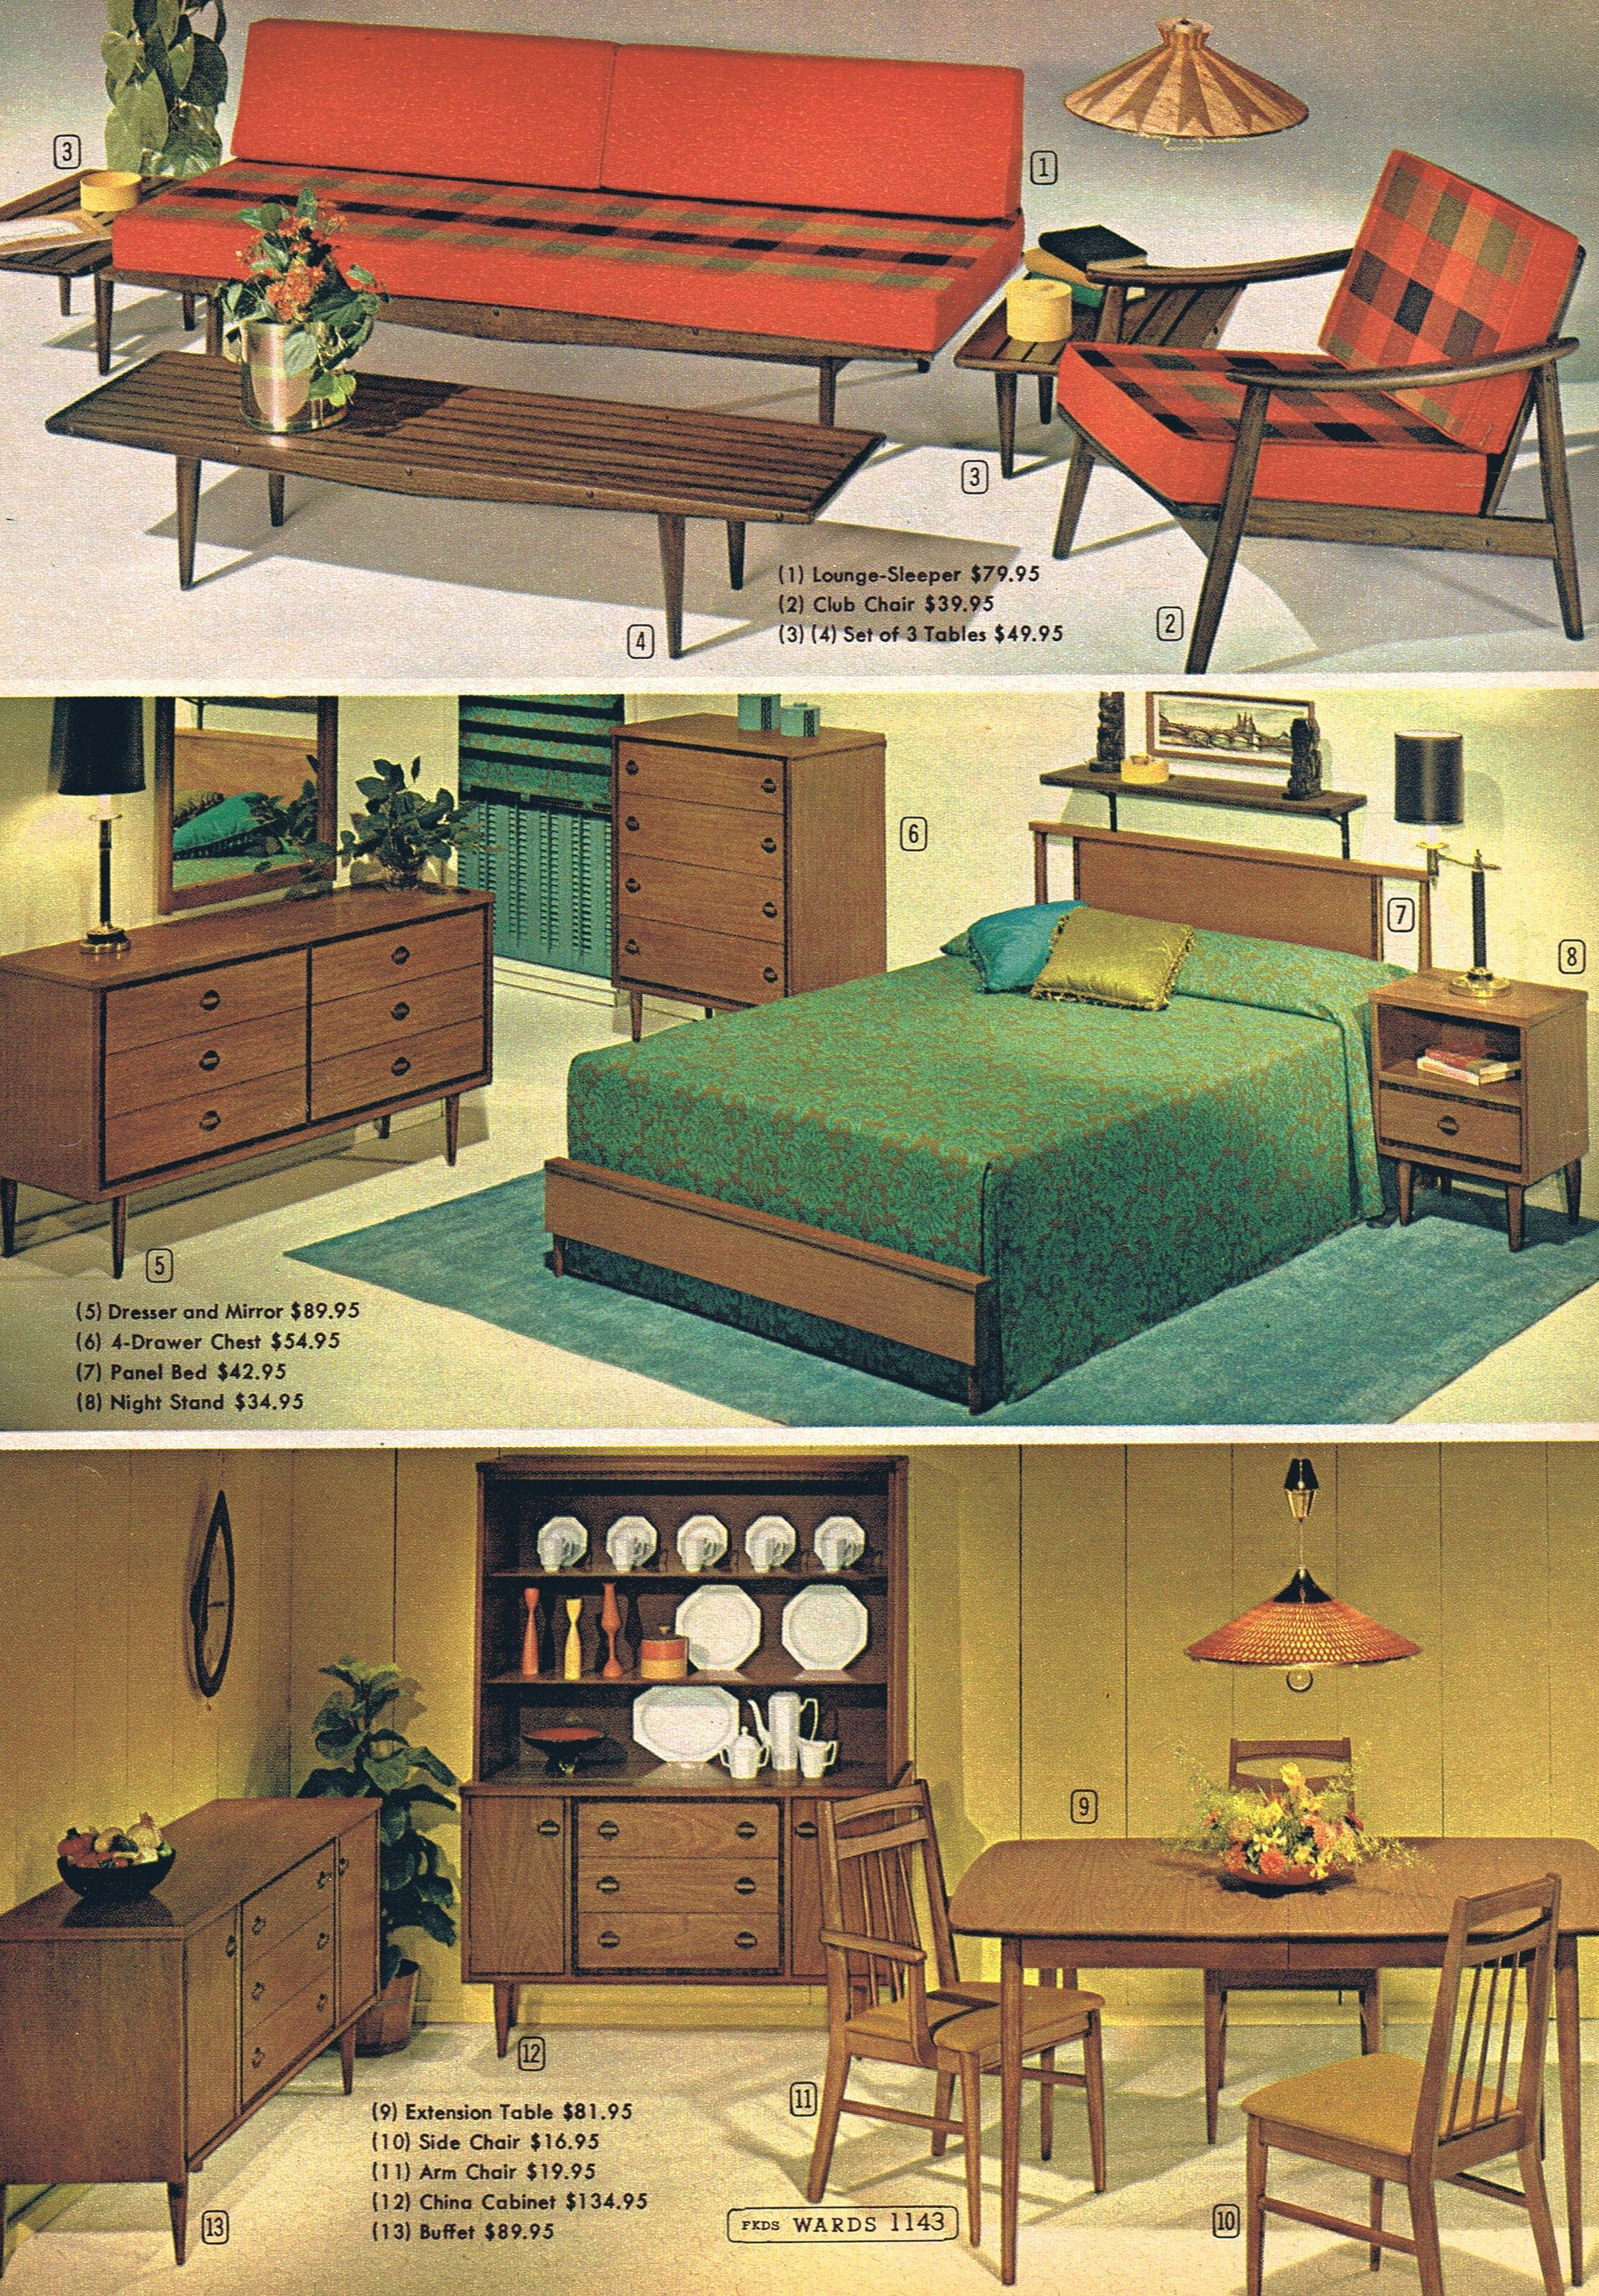 1966 Mcm For The Whole House From Wards Love That They Used Moe Lights As Props Retroho Mid Century Modern Interiors Minimalist Furniture Retro Home Decor